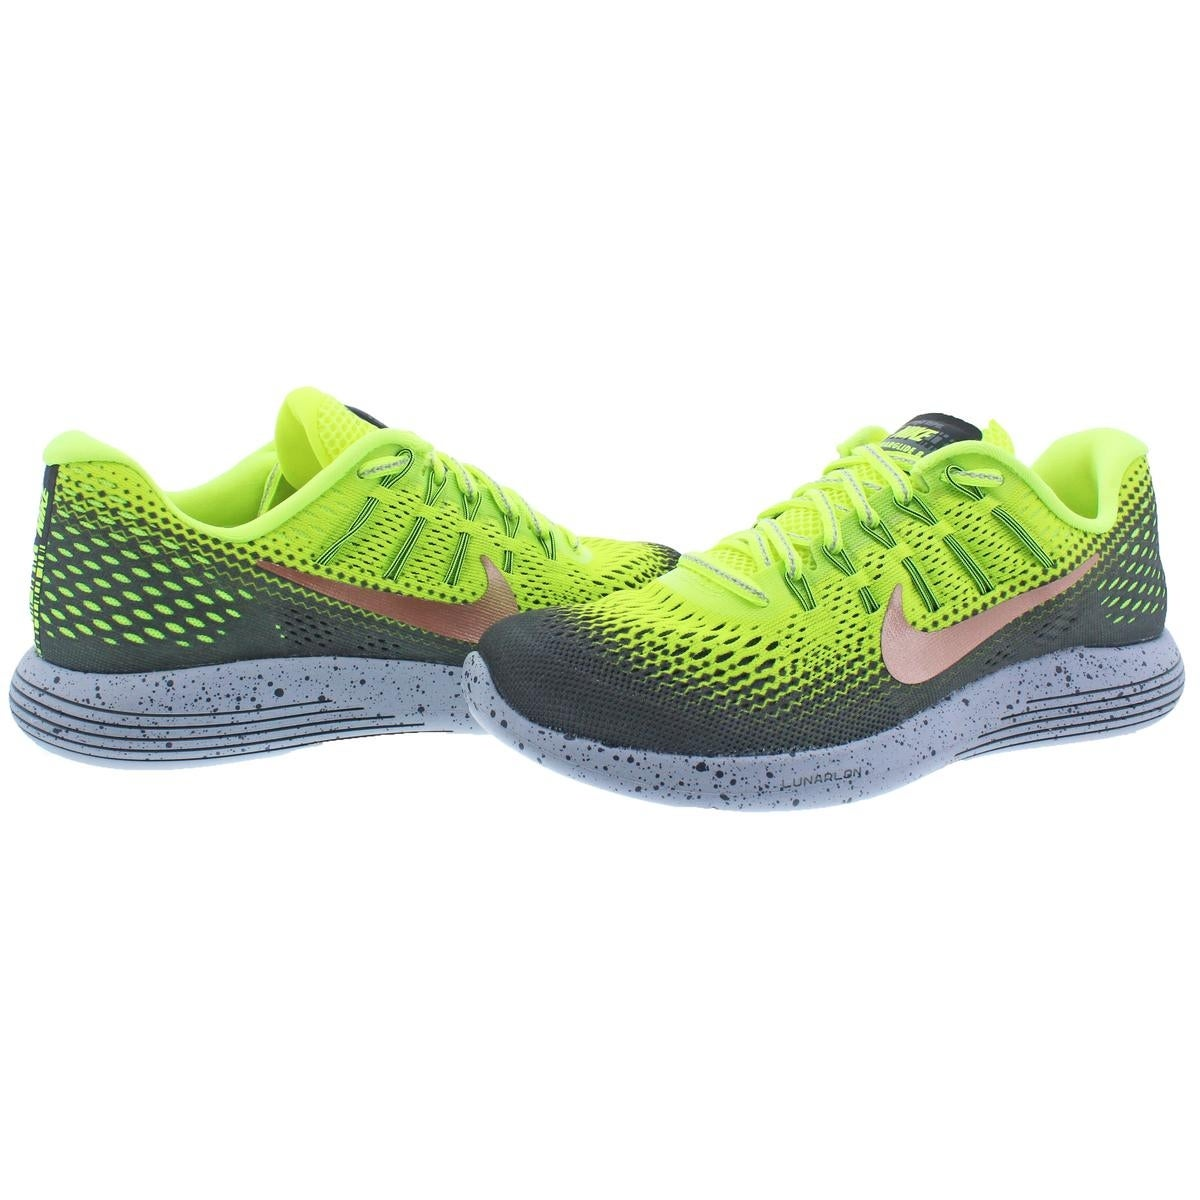 92dc8769052e ... low price shop nike mens lunarglide 8 shield running shoes h20 repel  dynamic support 6 medium